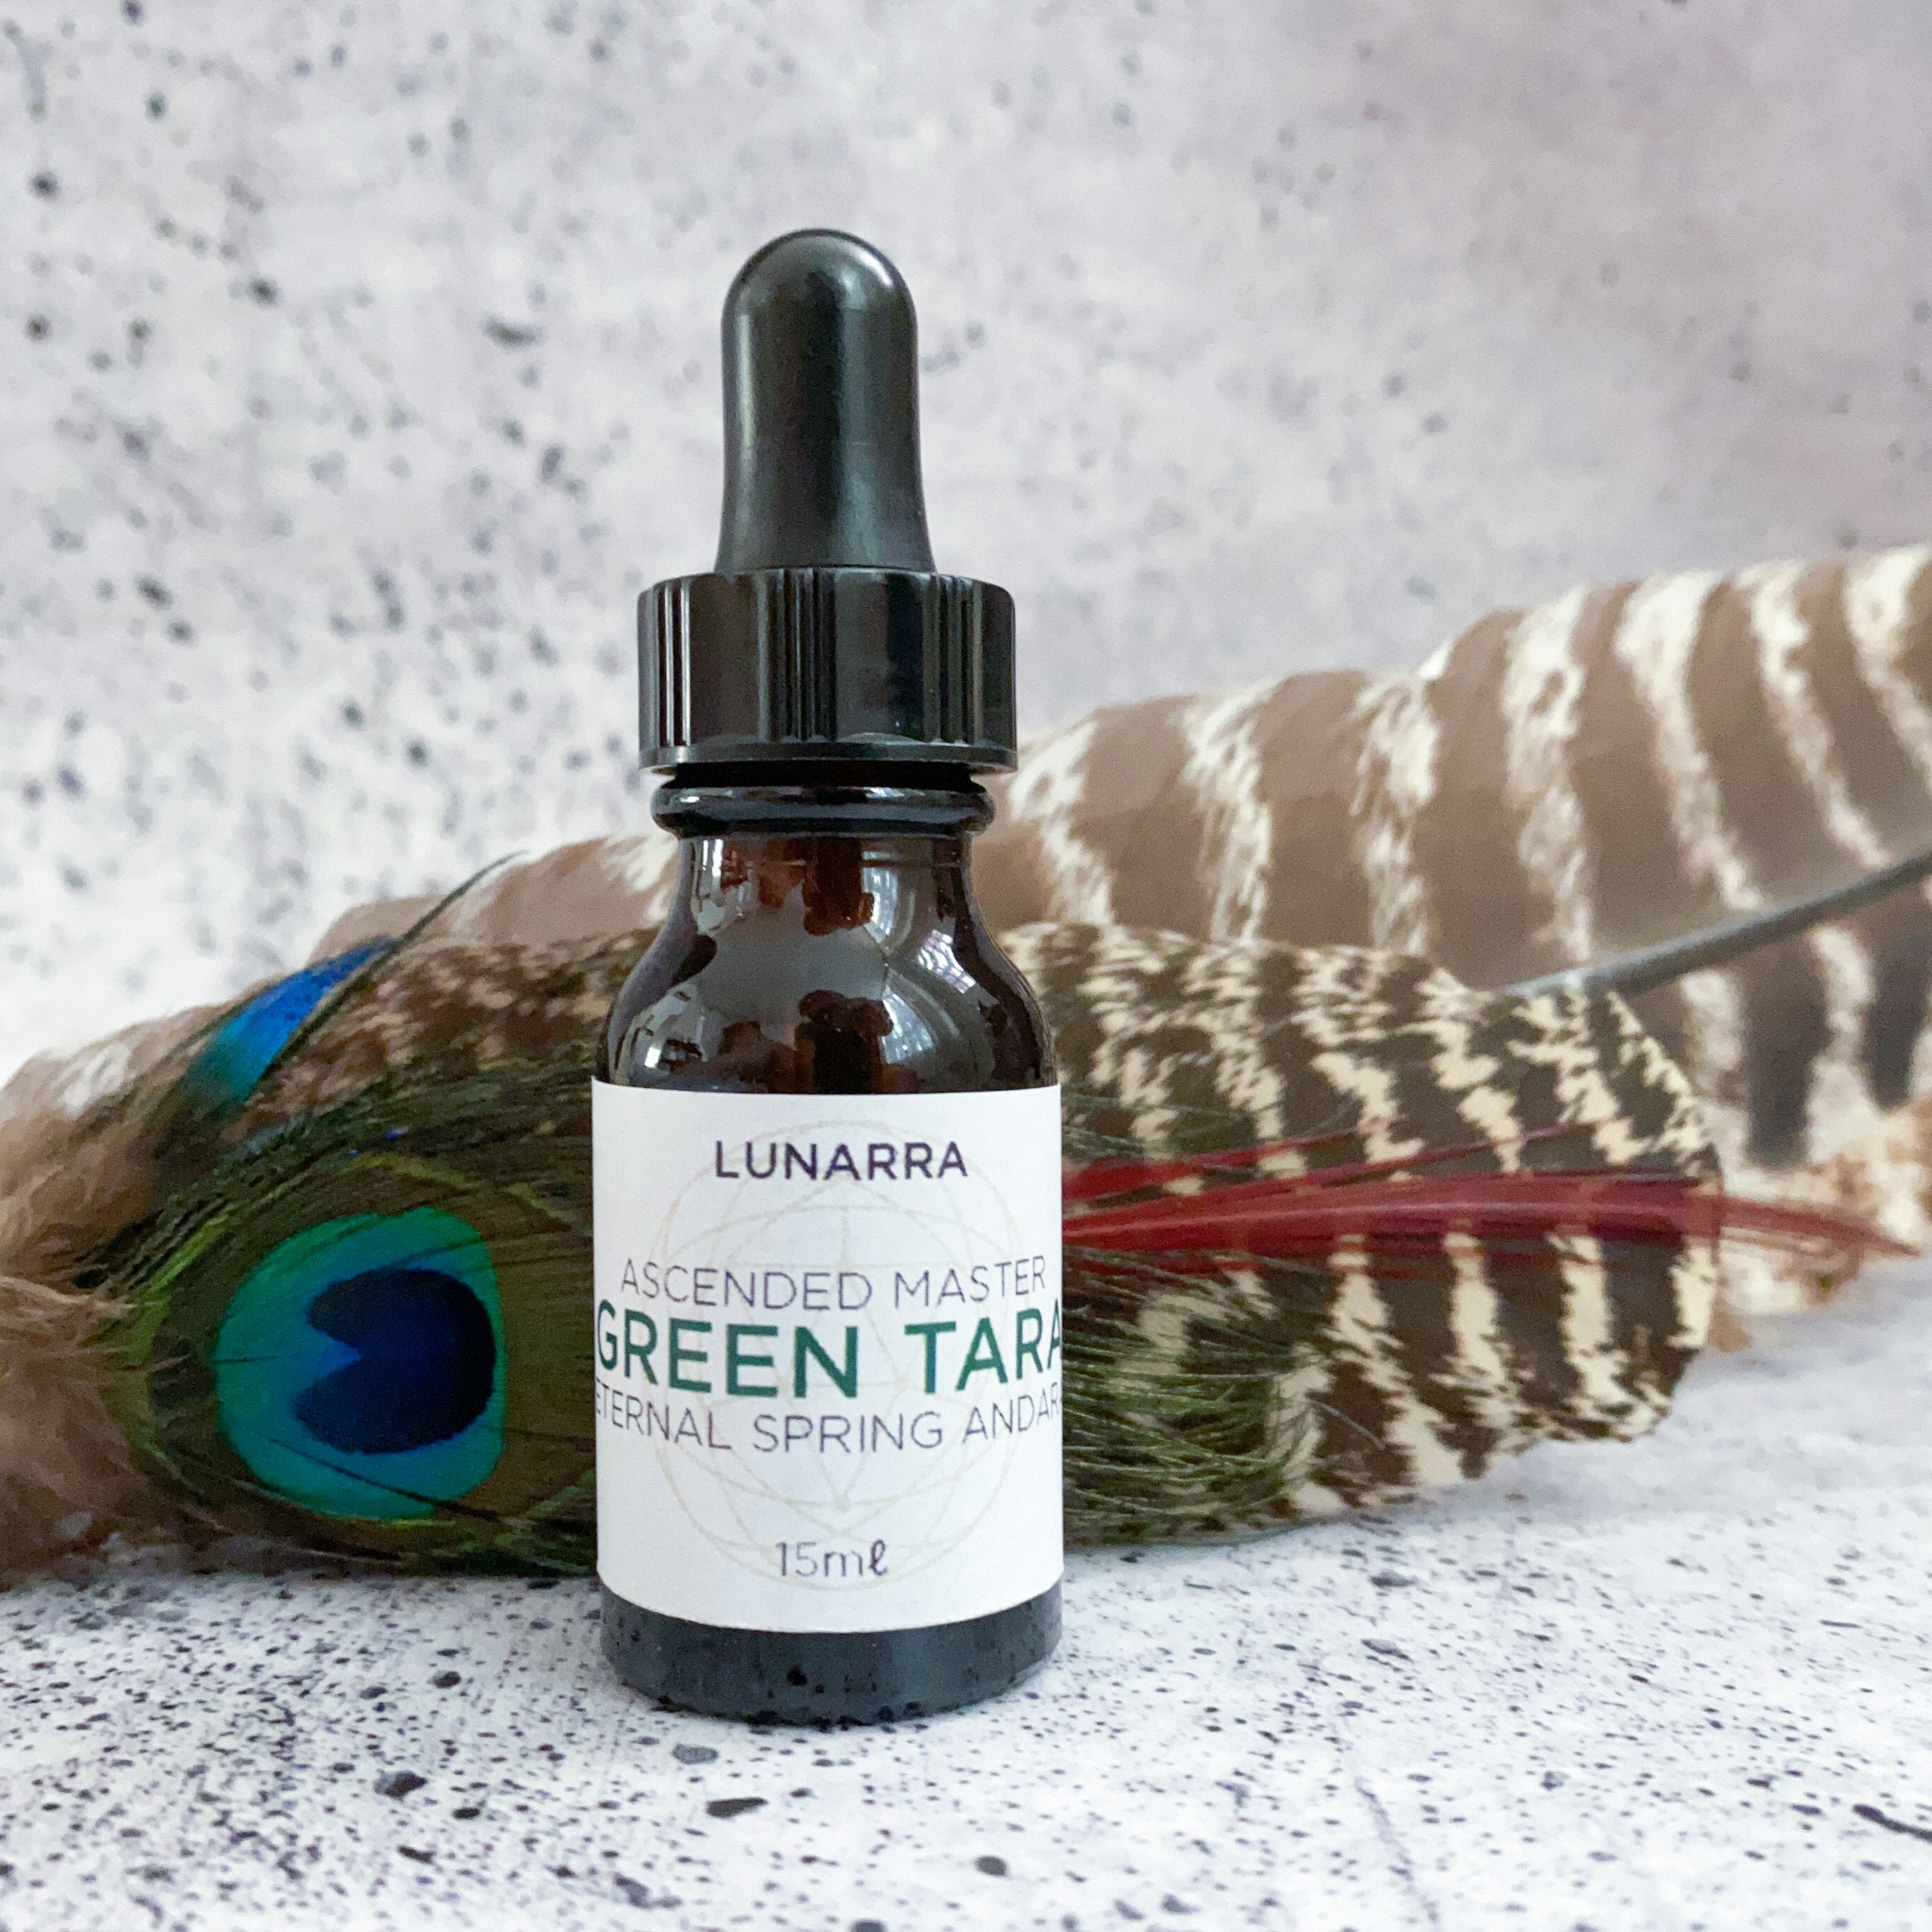 Ascended Master Green Tara (Eternal Spring Andara) Elixir 15ml